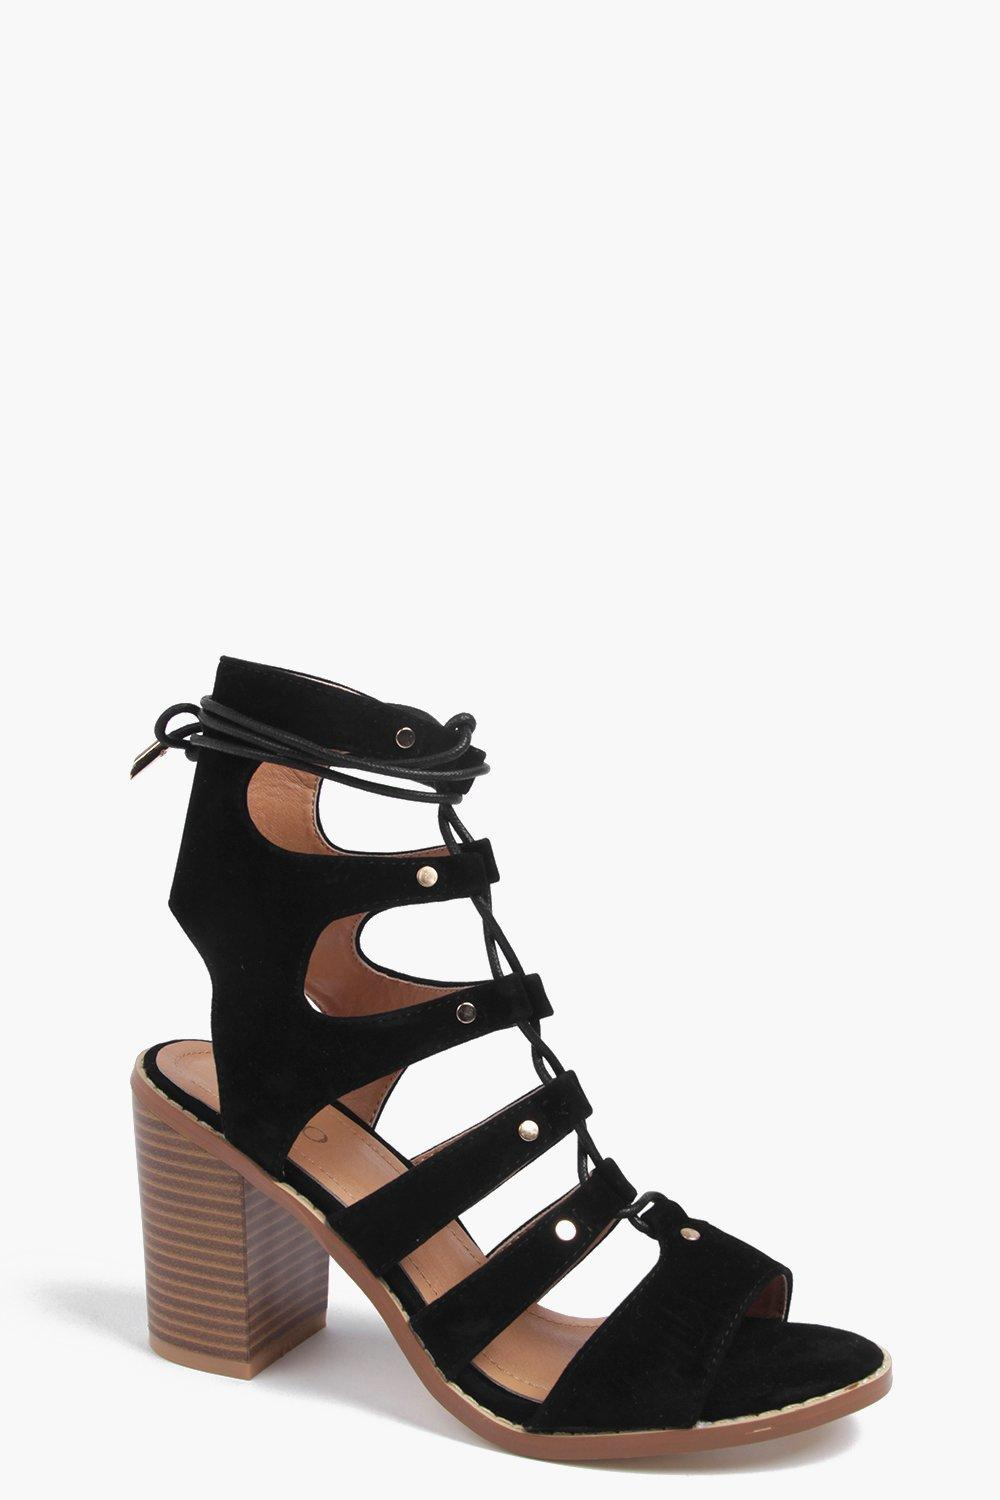 Tegan Lace Up Block Heel